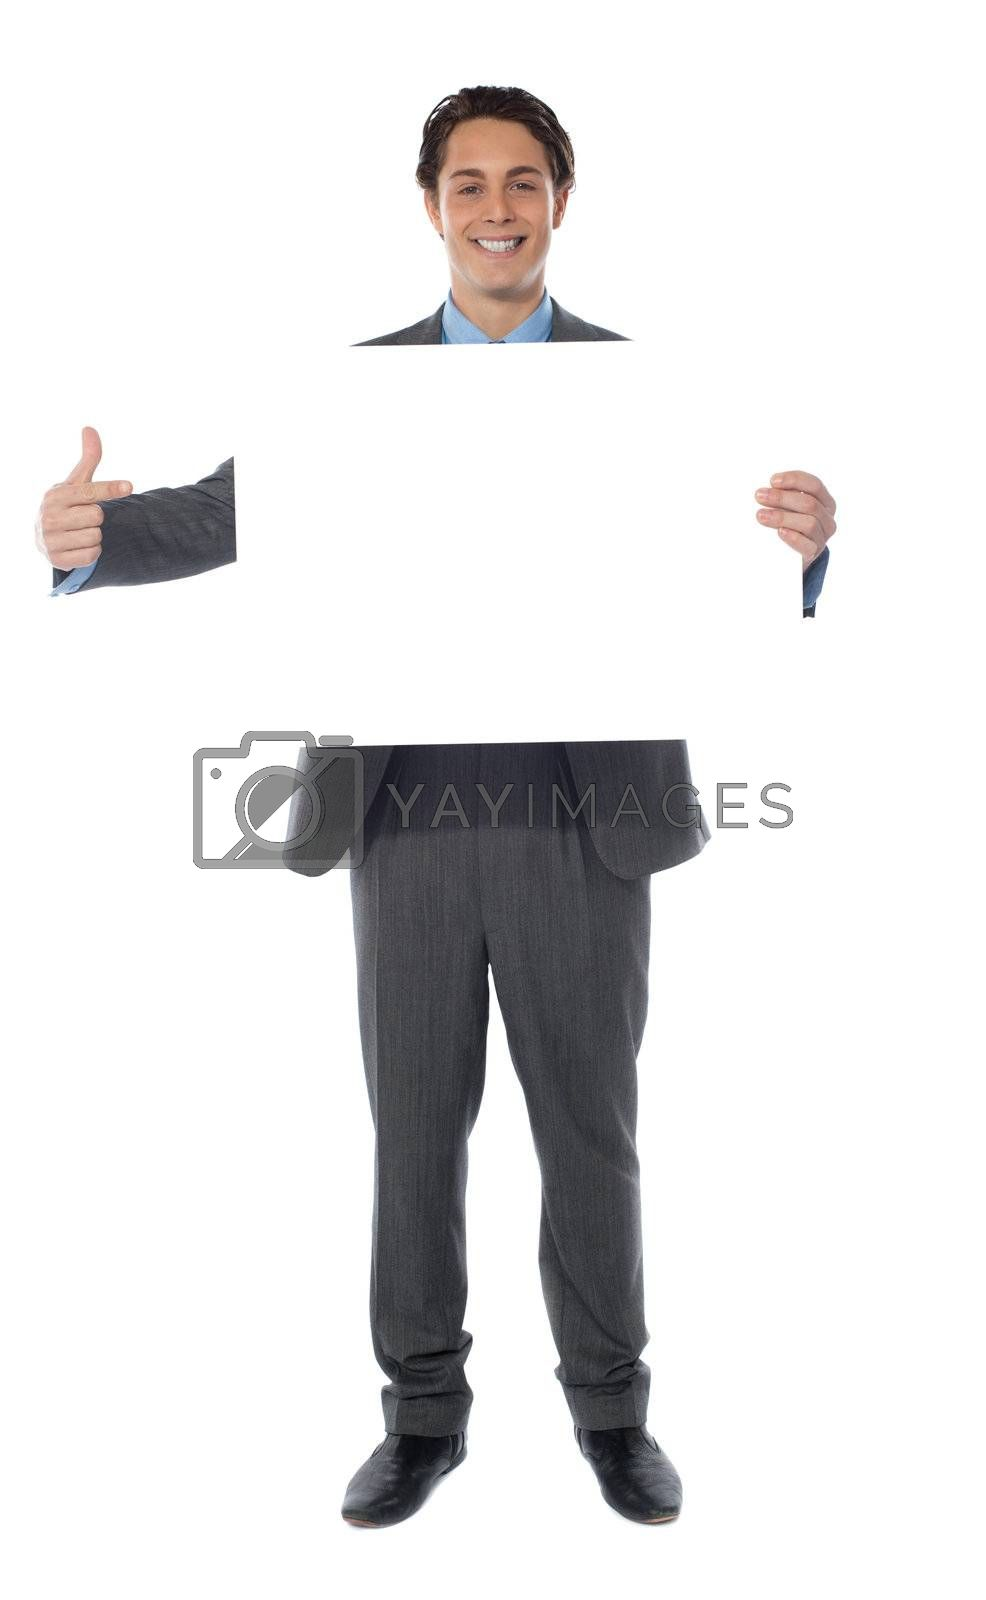 Business professional pointing towards an empty billboard, smiling at camera